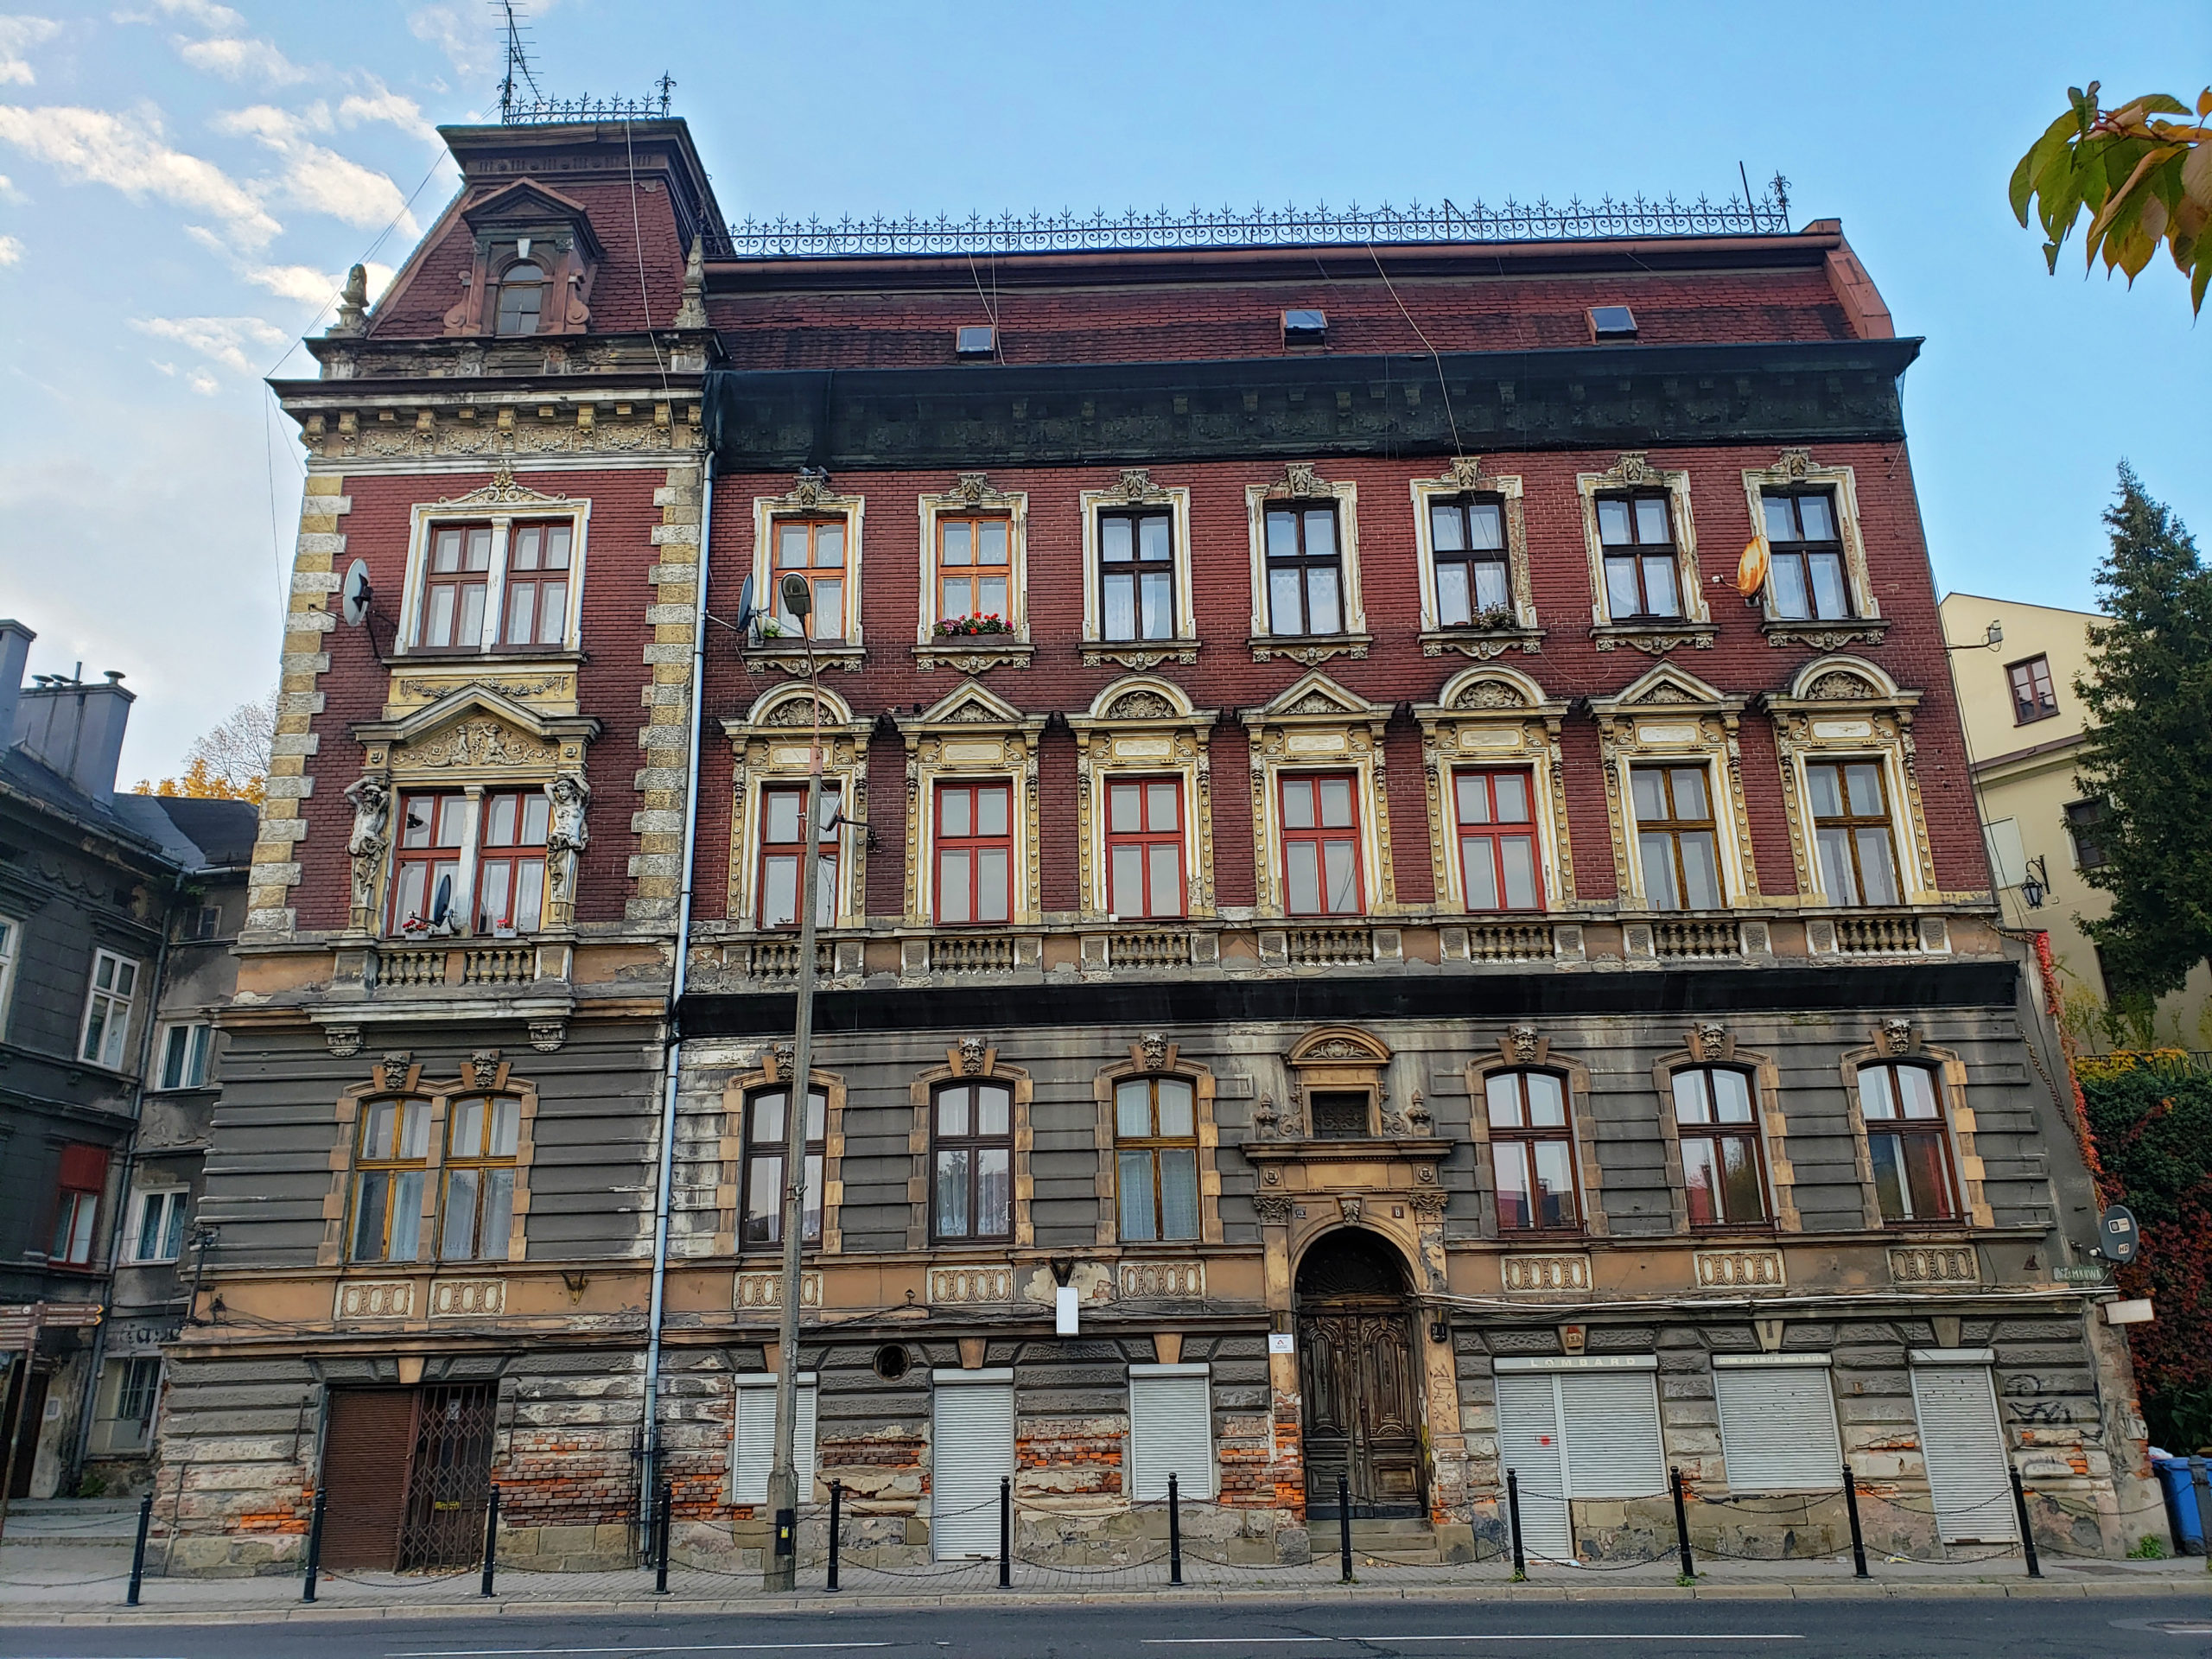 One Day In Bielsko-Biała - A Unique City Off The Beaten Path